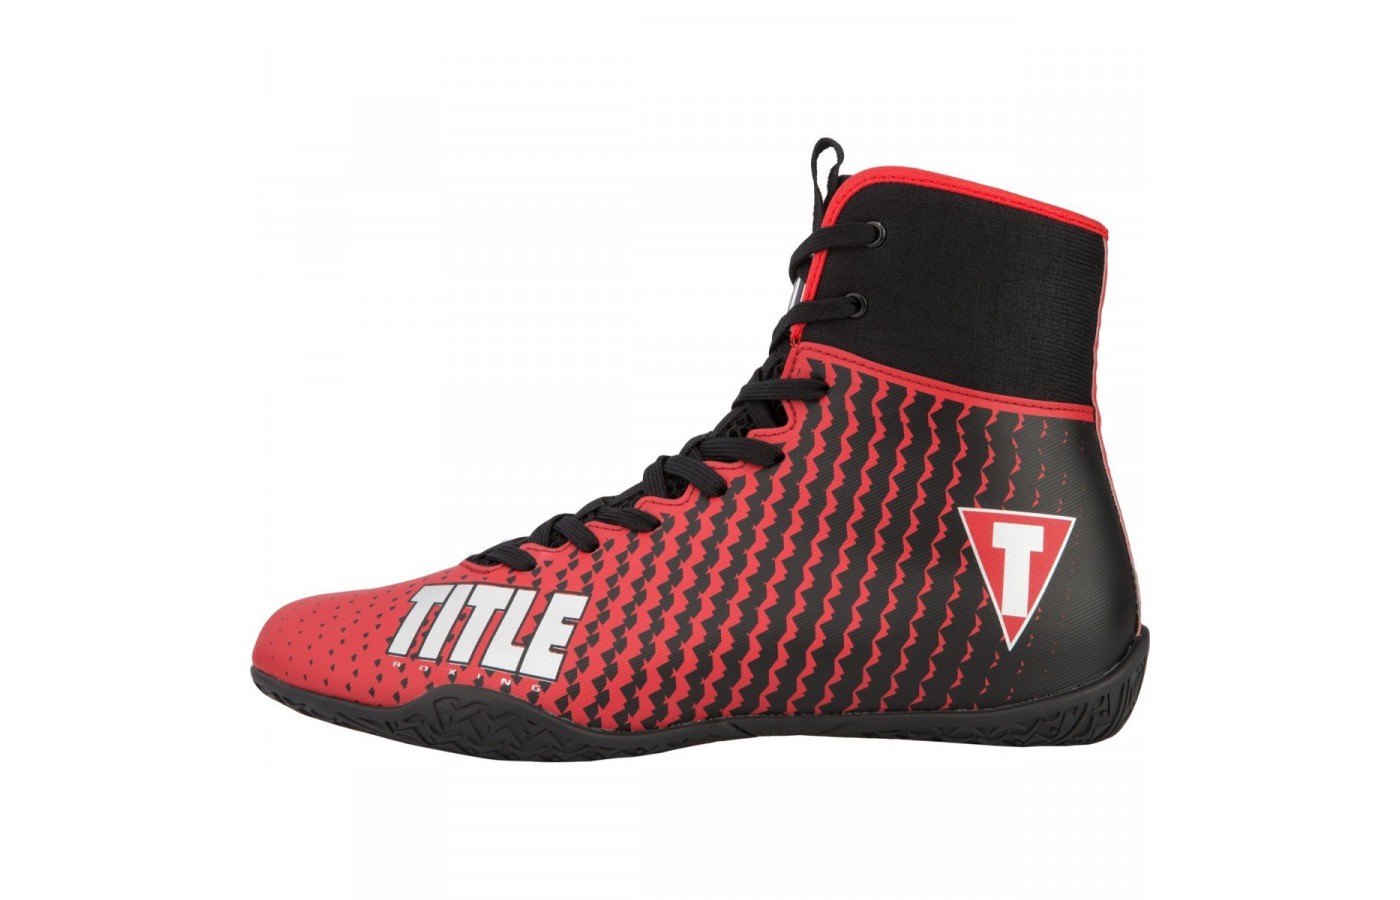 Title predator II black and red